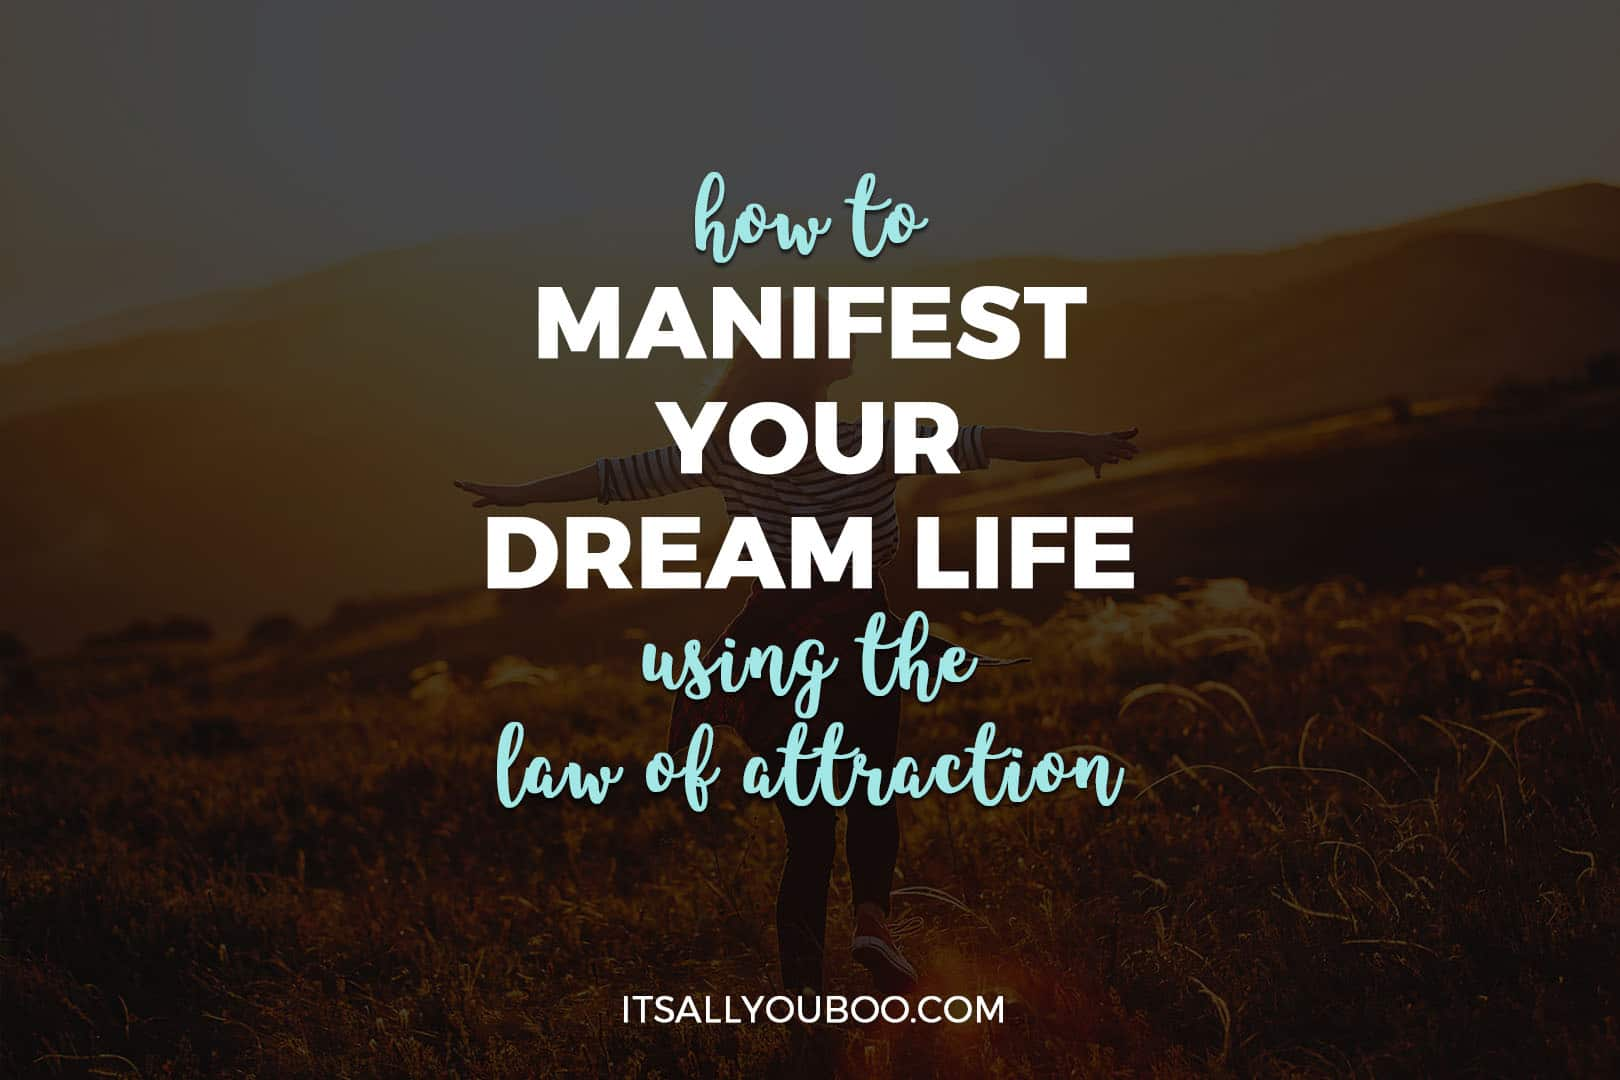 How to Manifest Your Dream Life Using the Law of Attraction